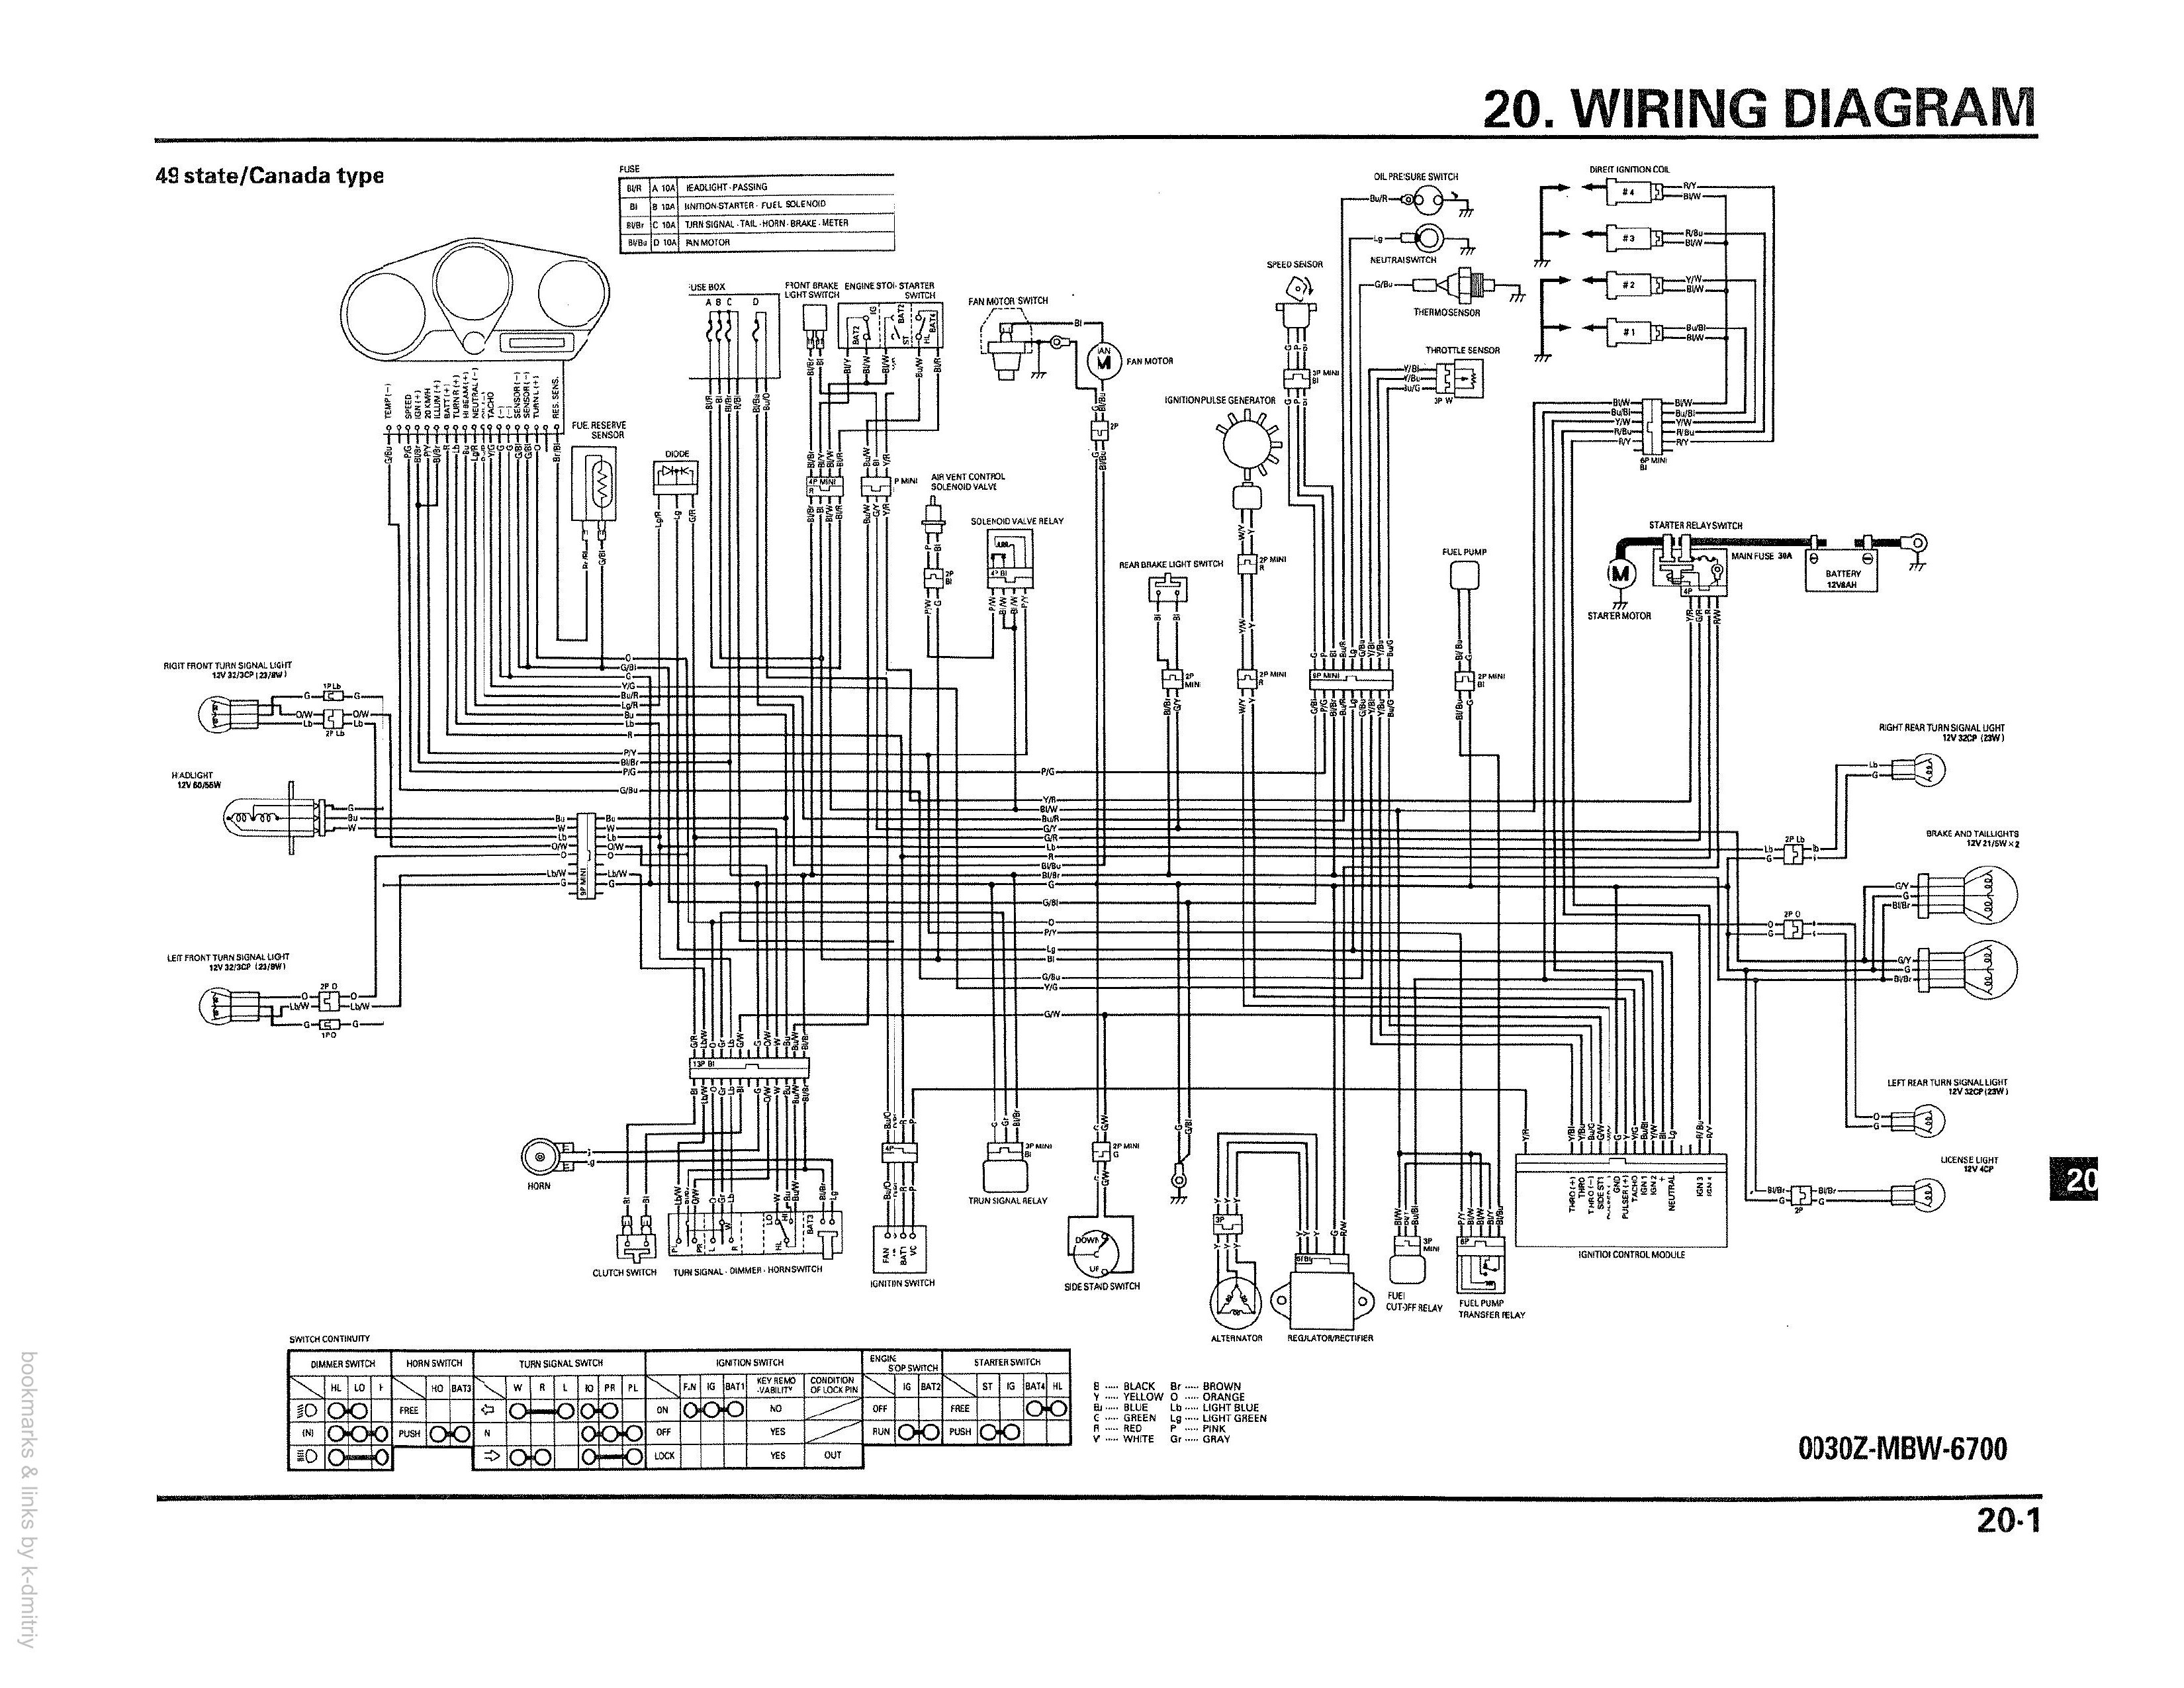 Tl1000r Wiring Diagram Suzuki Swift Sport John Deere 4020 Electrical Honda Automotive Diagrams